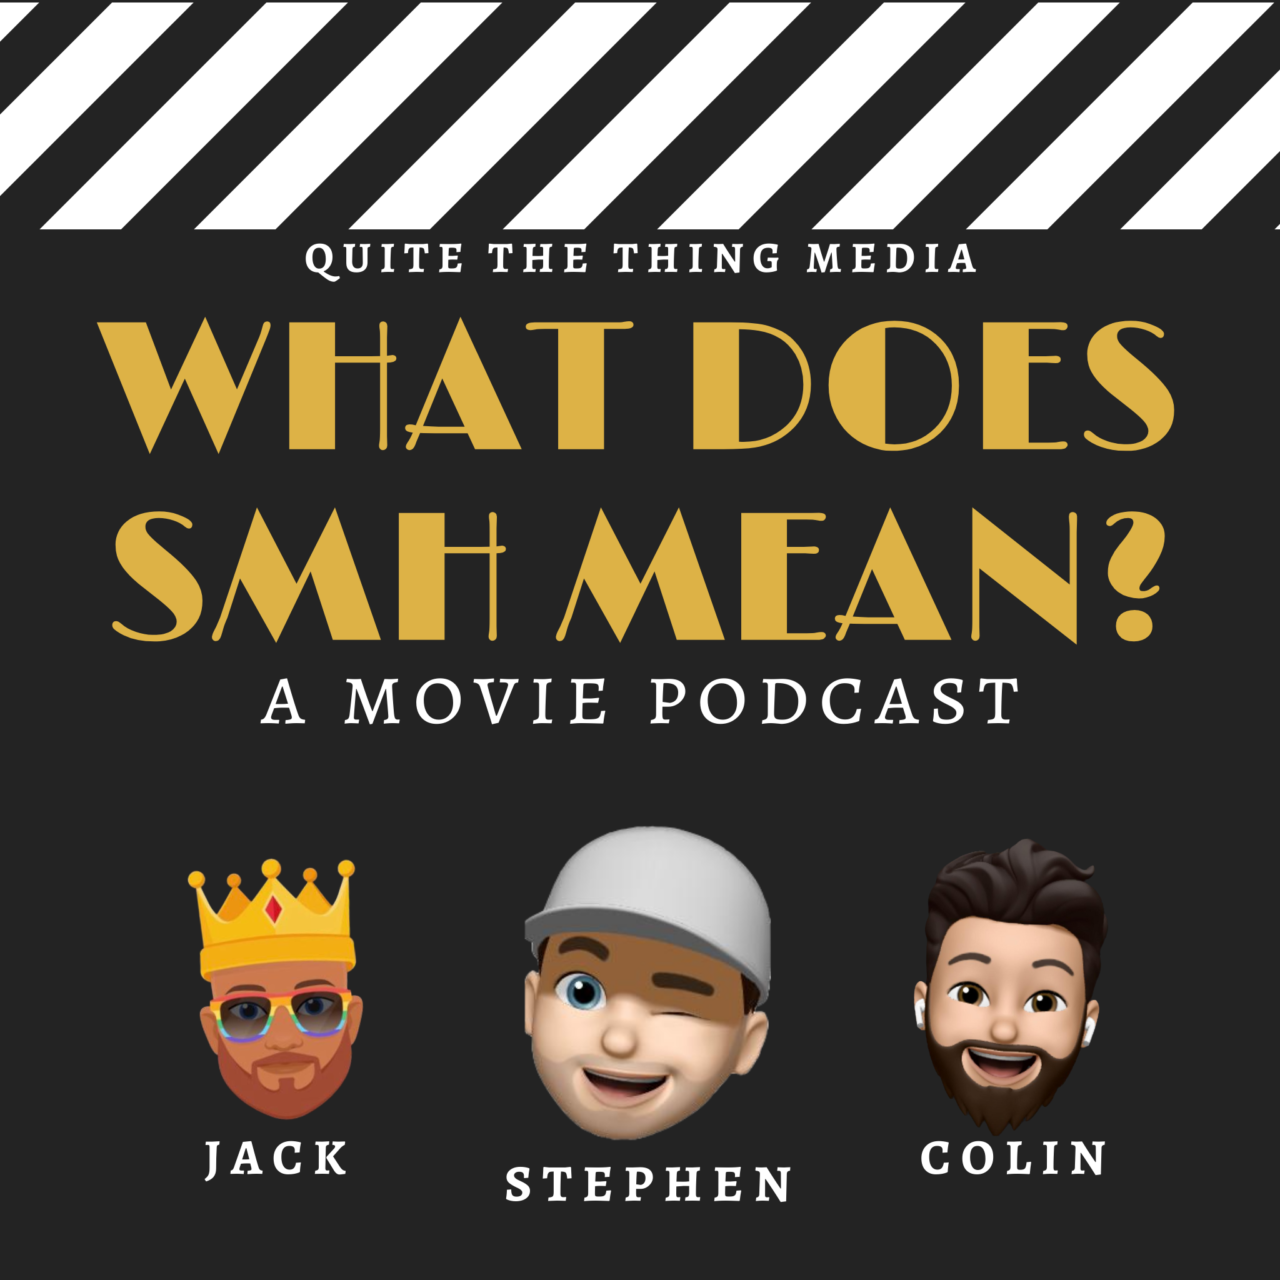 What Does SMH Mean - A Movie Podcast